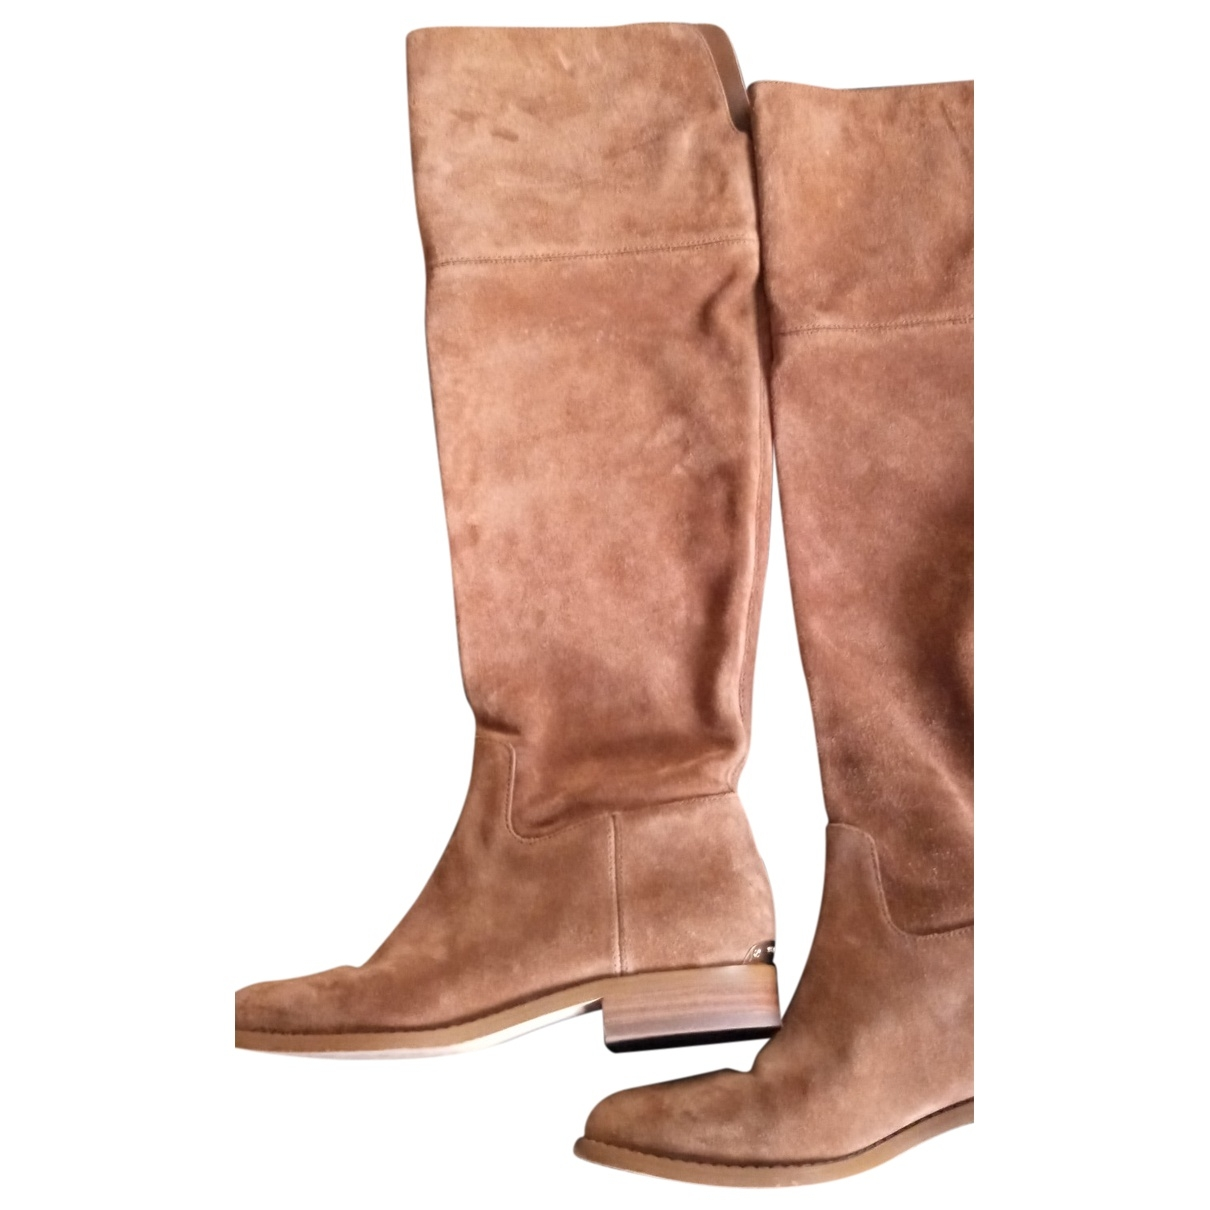 Michael Kors \N Brown Suede Boots for Women 37 EU